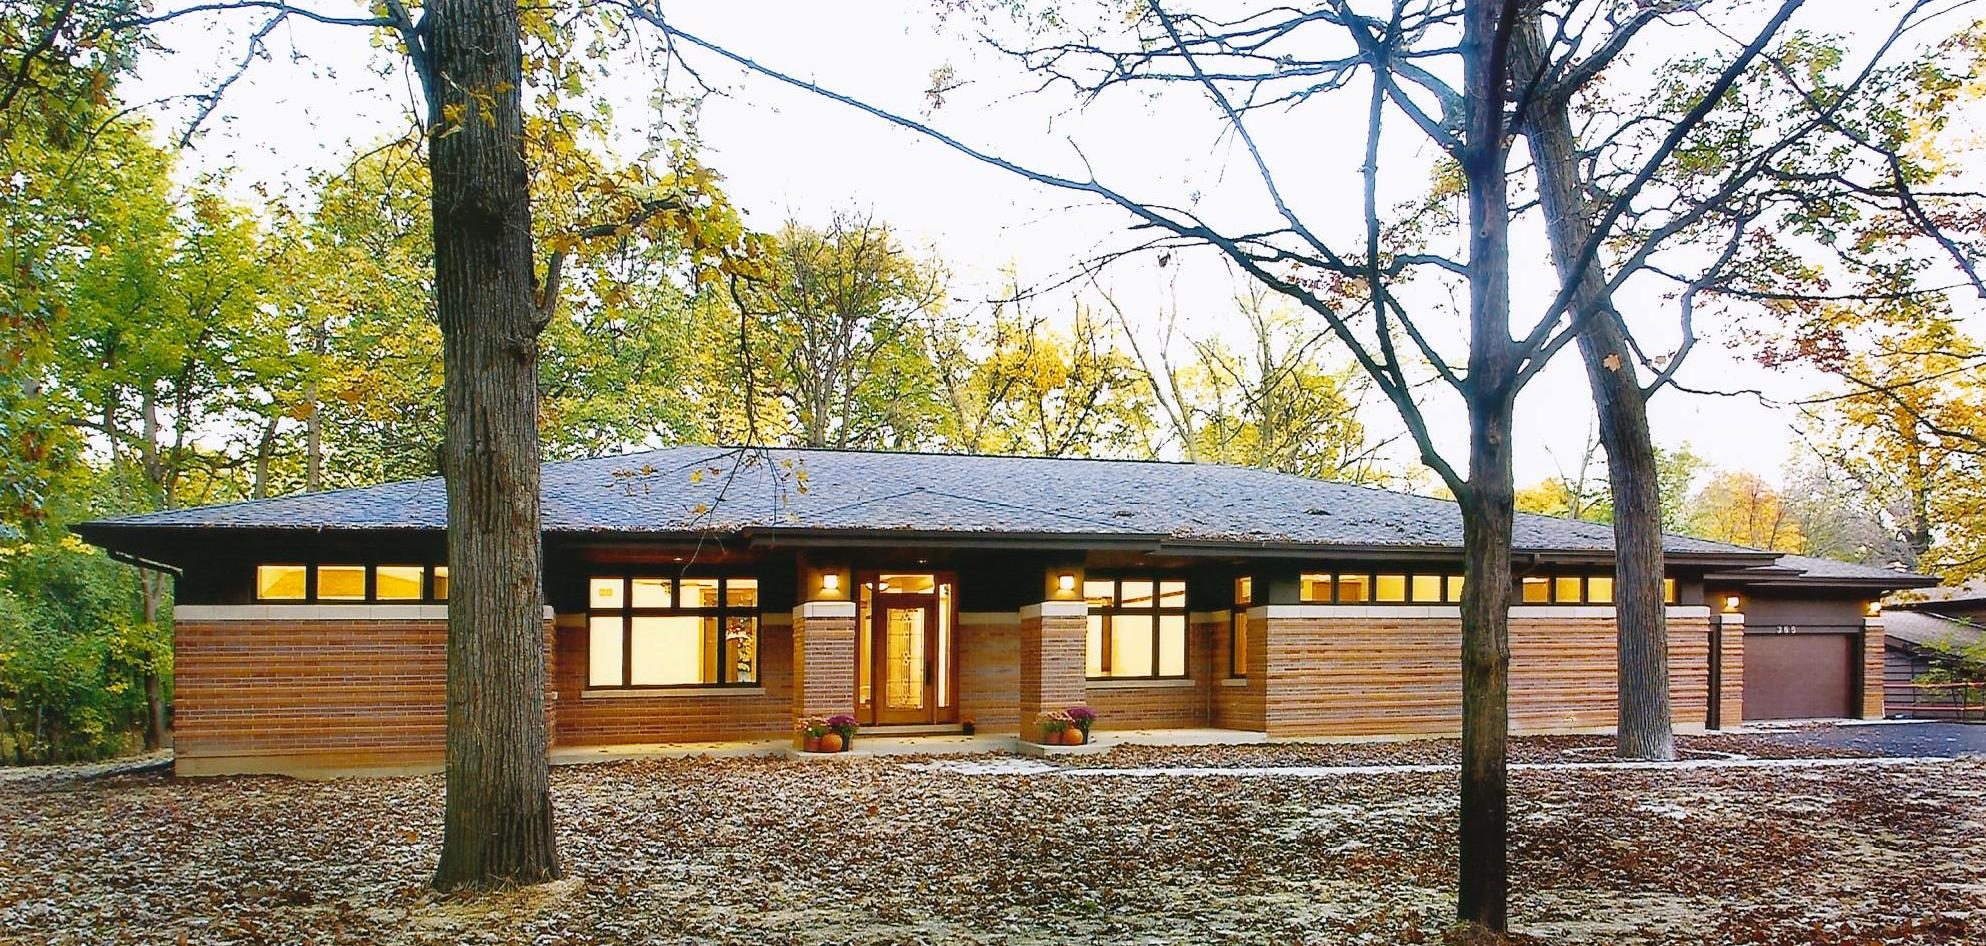 Frank Lloyd Wright Inspired Ranch House | PrairieArchitect